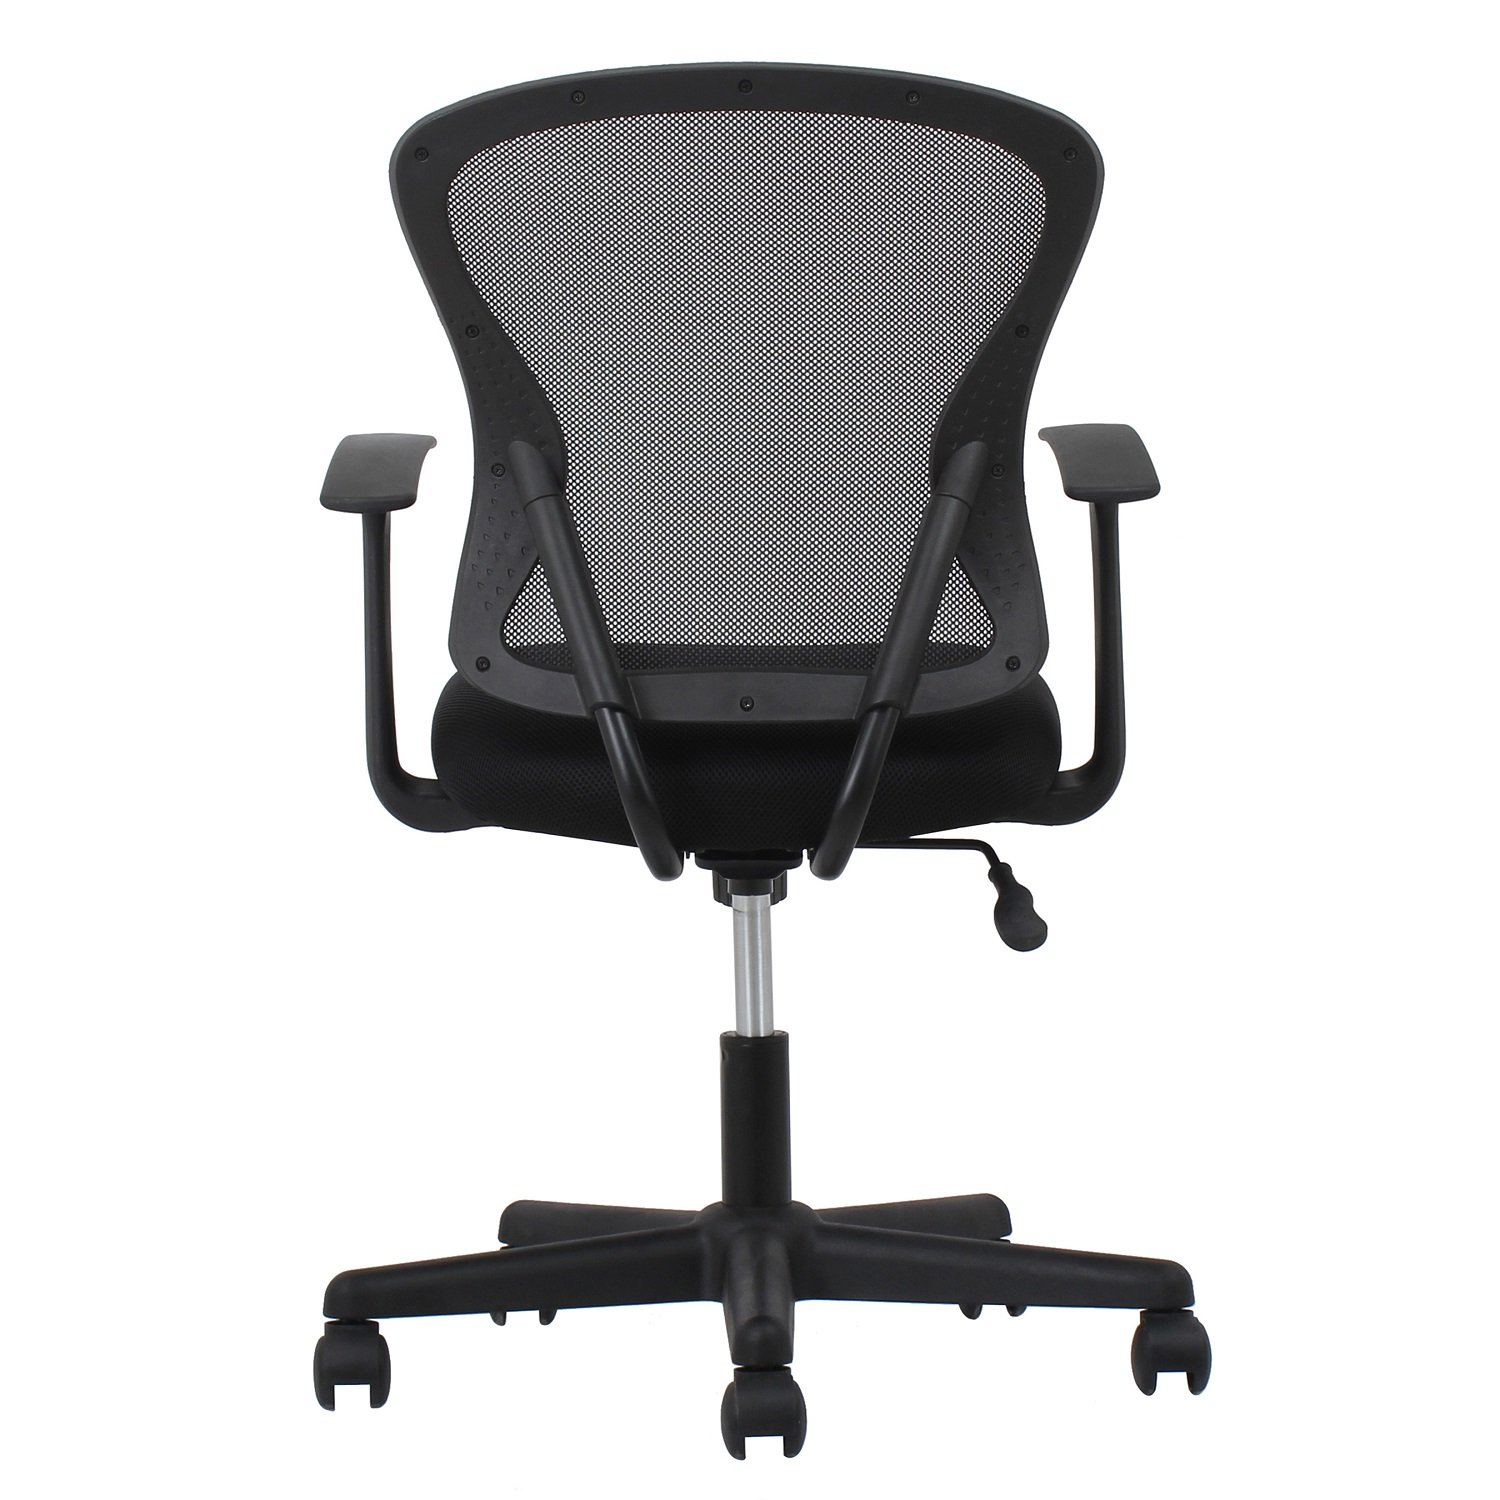 Amazon Essentials Swivel Mesh Task Chair with Arms Ergonomic puter fice Chair ESS 3011 Kitchen & Dining